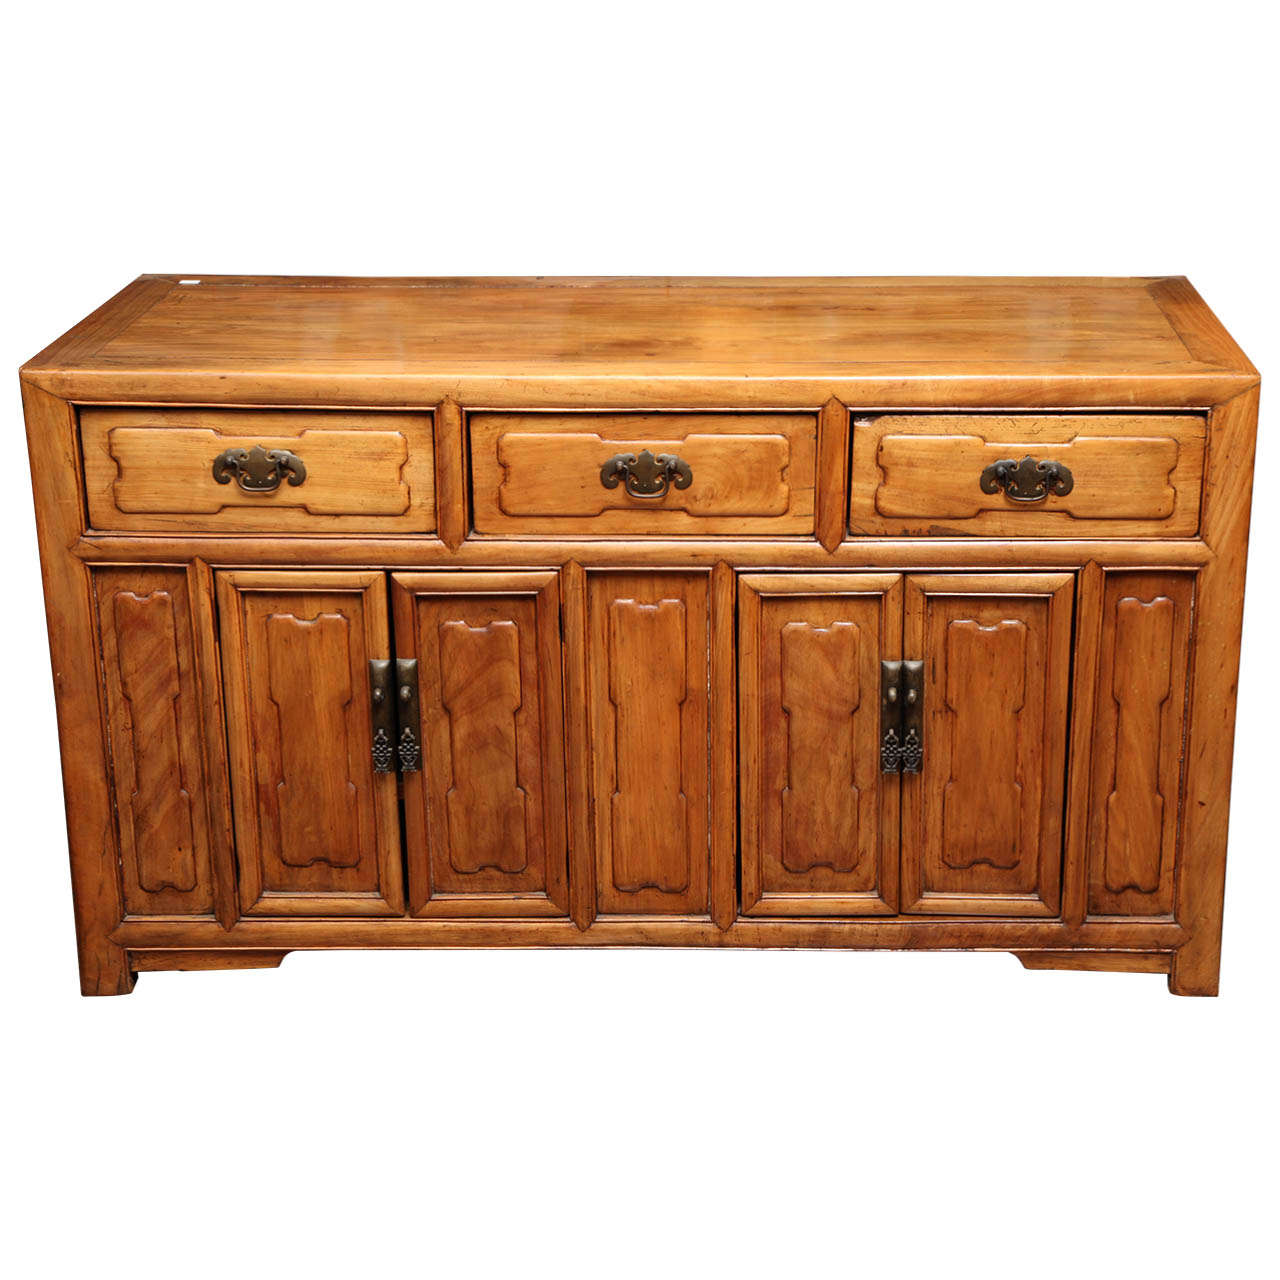 Antique Chinese Raised Elmwood Panel Sideboard from the Early 20th Century